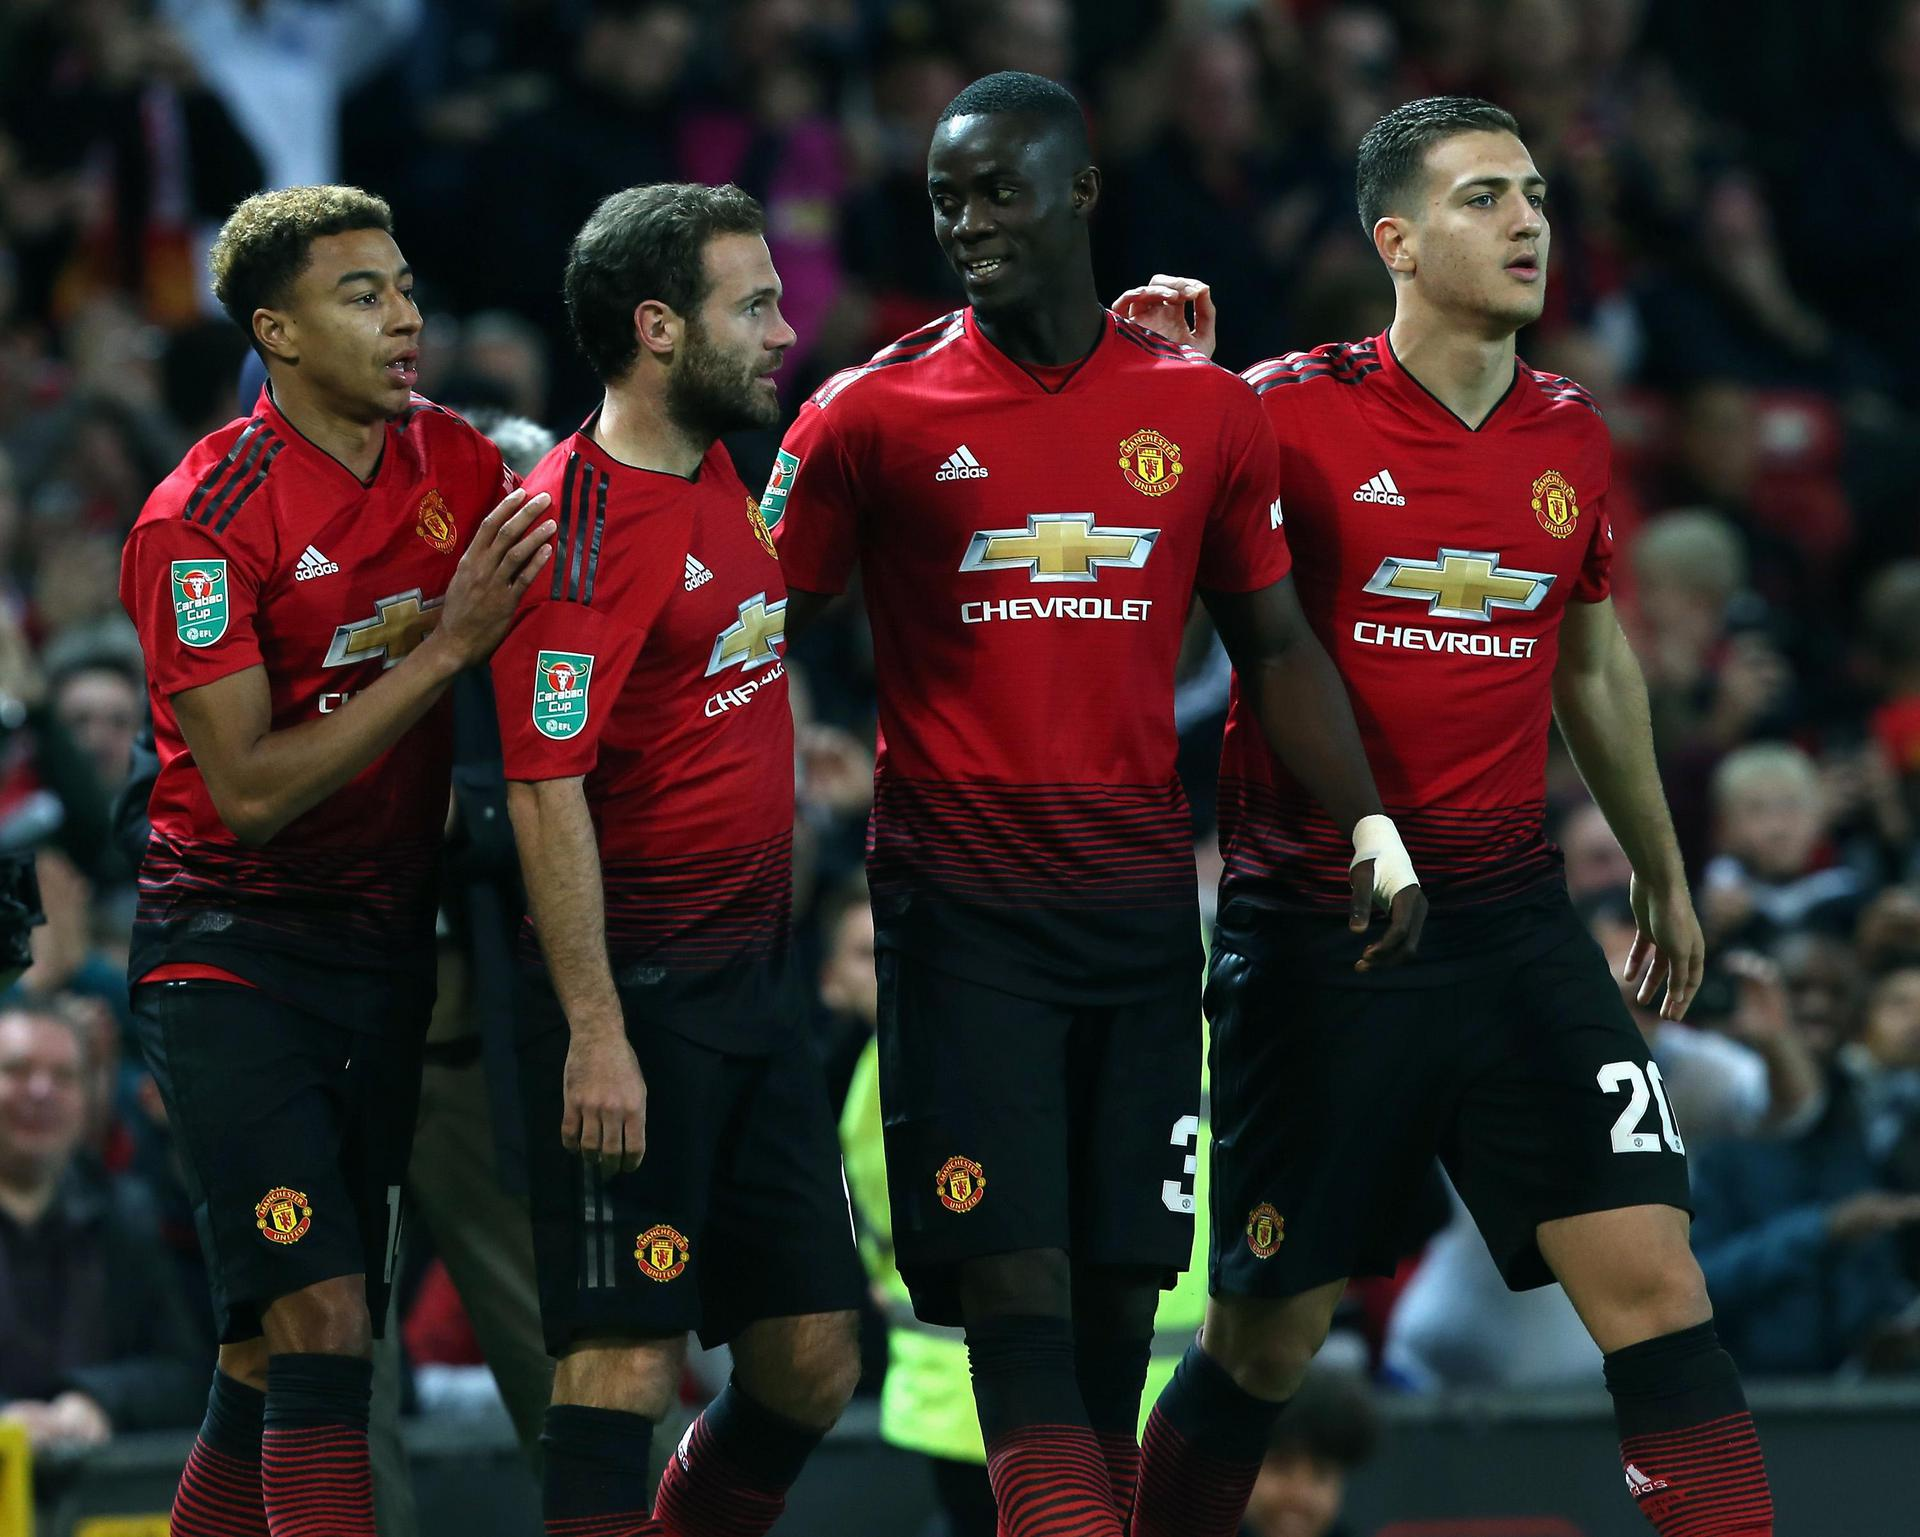 Jesse Lingard, Juan Mata, Eric Bailly and Diogo Dalot celebrate a goal against Derby County in the Carabao Cup